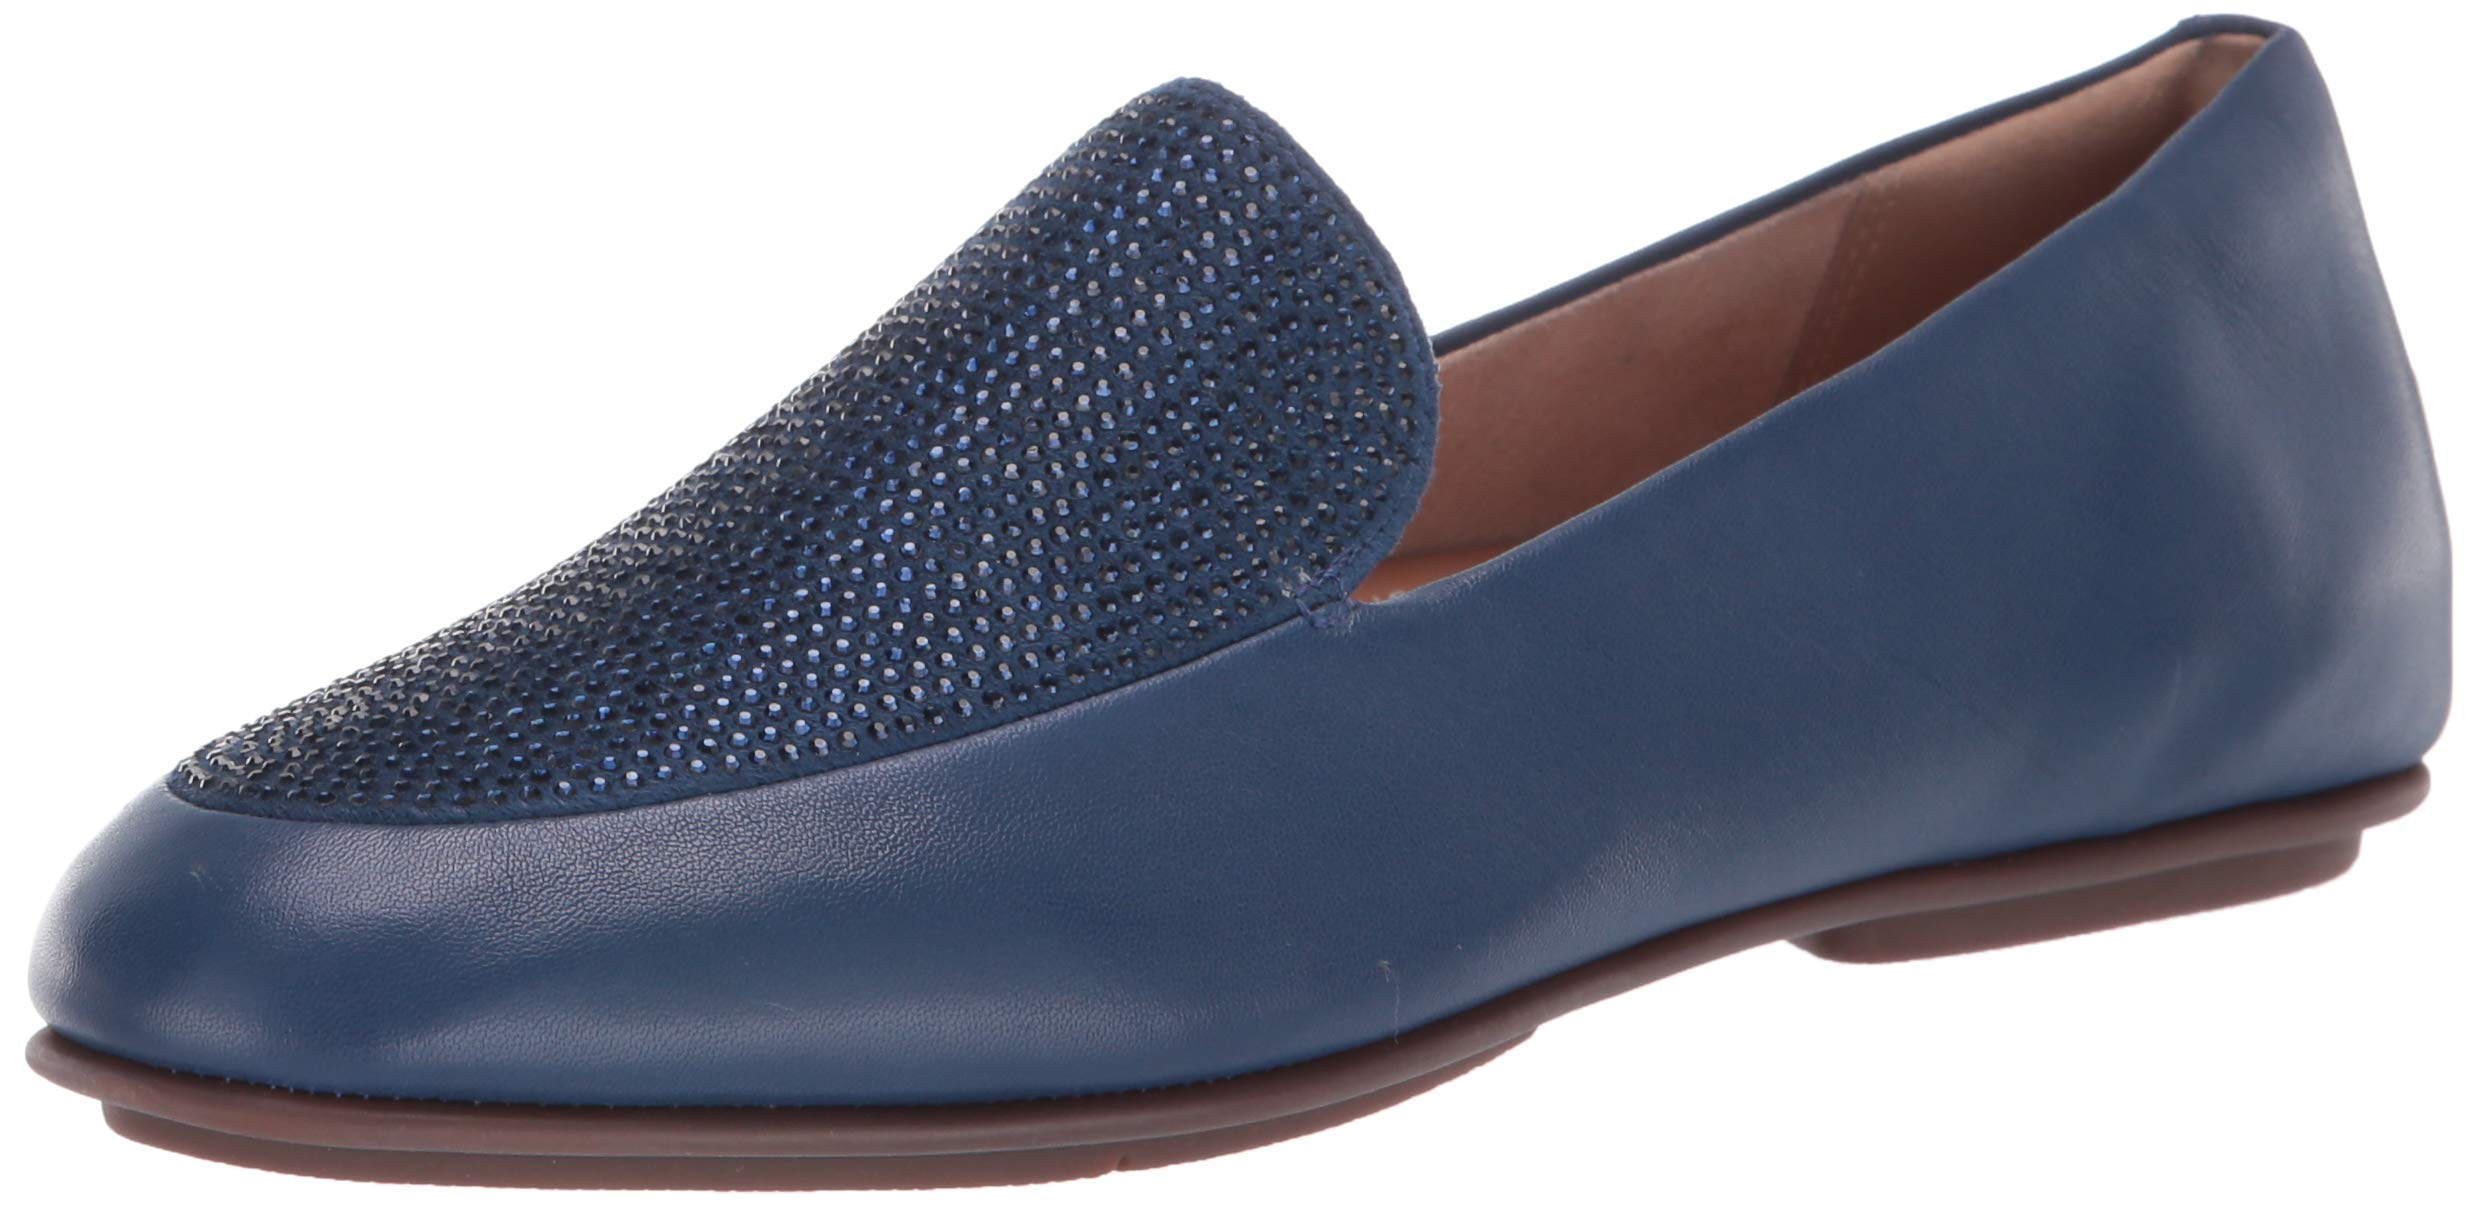 FITFLOP Women's Lena Crystal Loafers Flat, Aurora Blue, 9 M US by FITFLOP